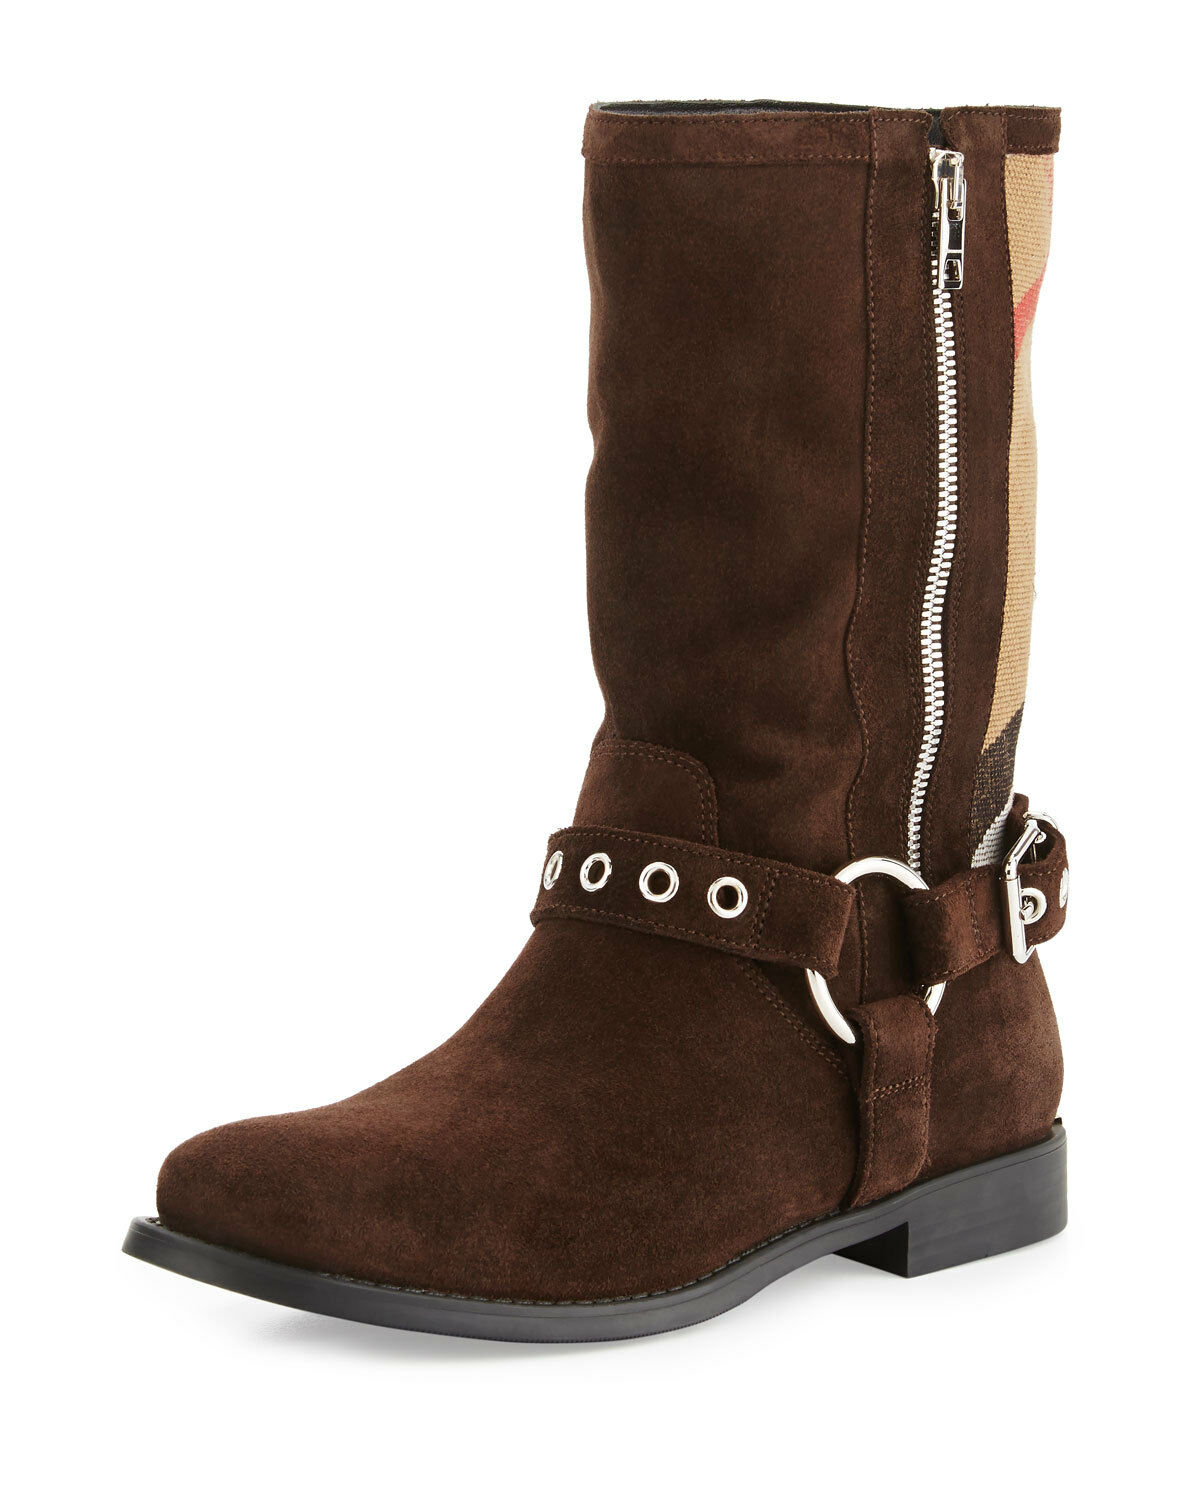 100% AUTHENTIC NEW WOMEN BURBERRY GRANTVISION  CHECK MOTO BOOTS /US 8